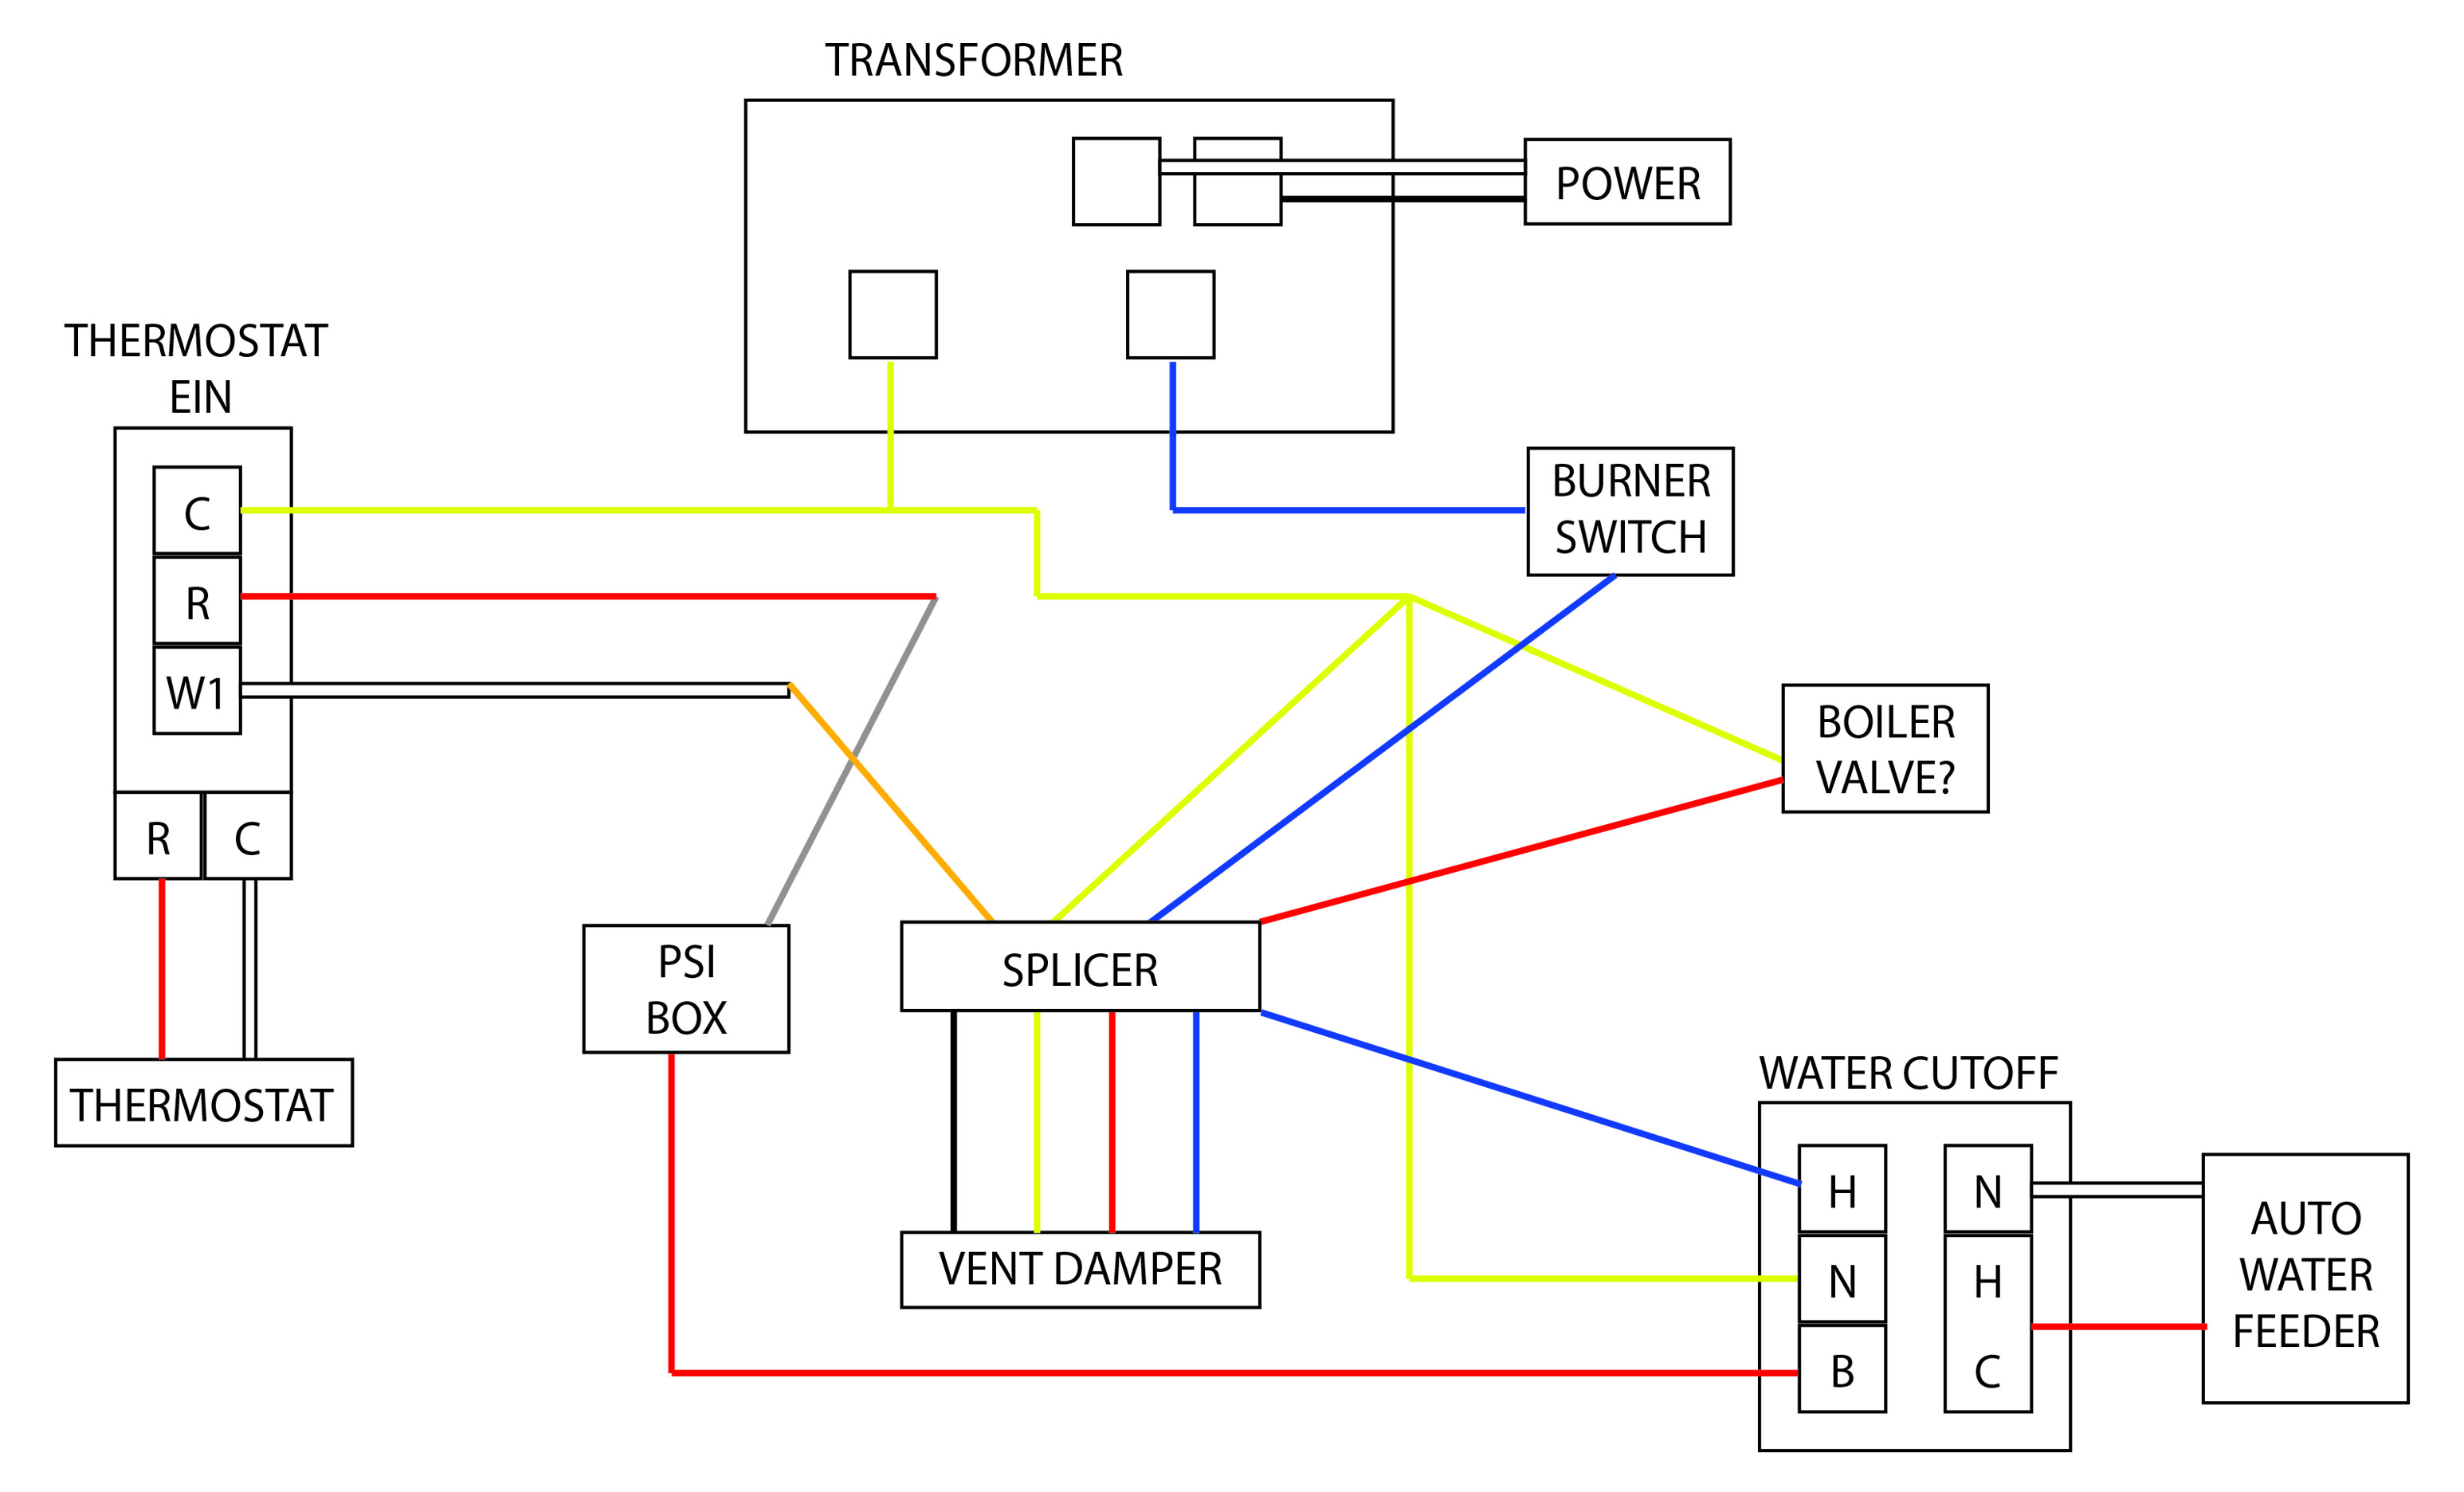 steam boiler wiring diagram 1979 pontiac trans am ac automatic water feeder shuts off power at low